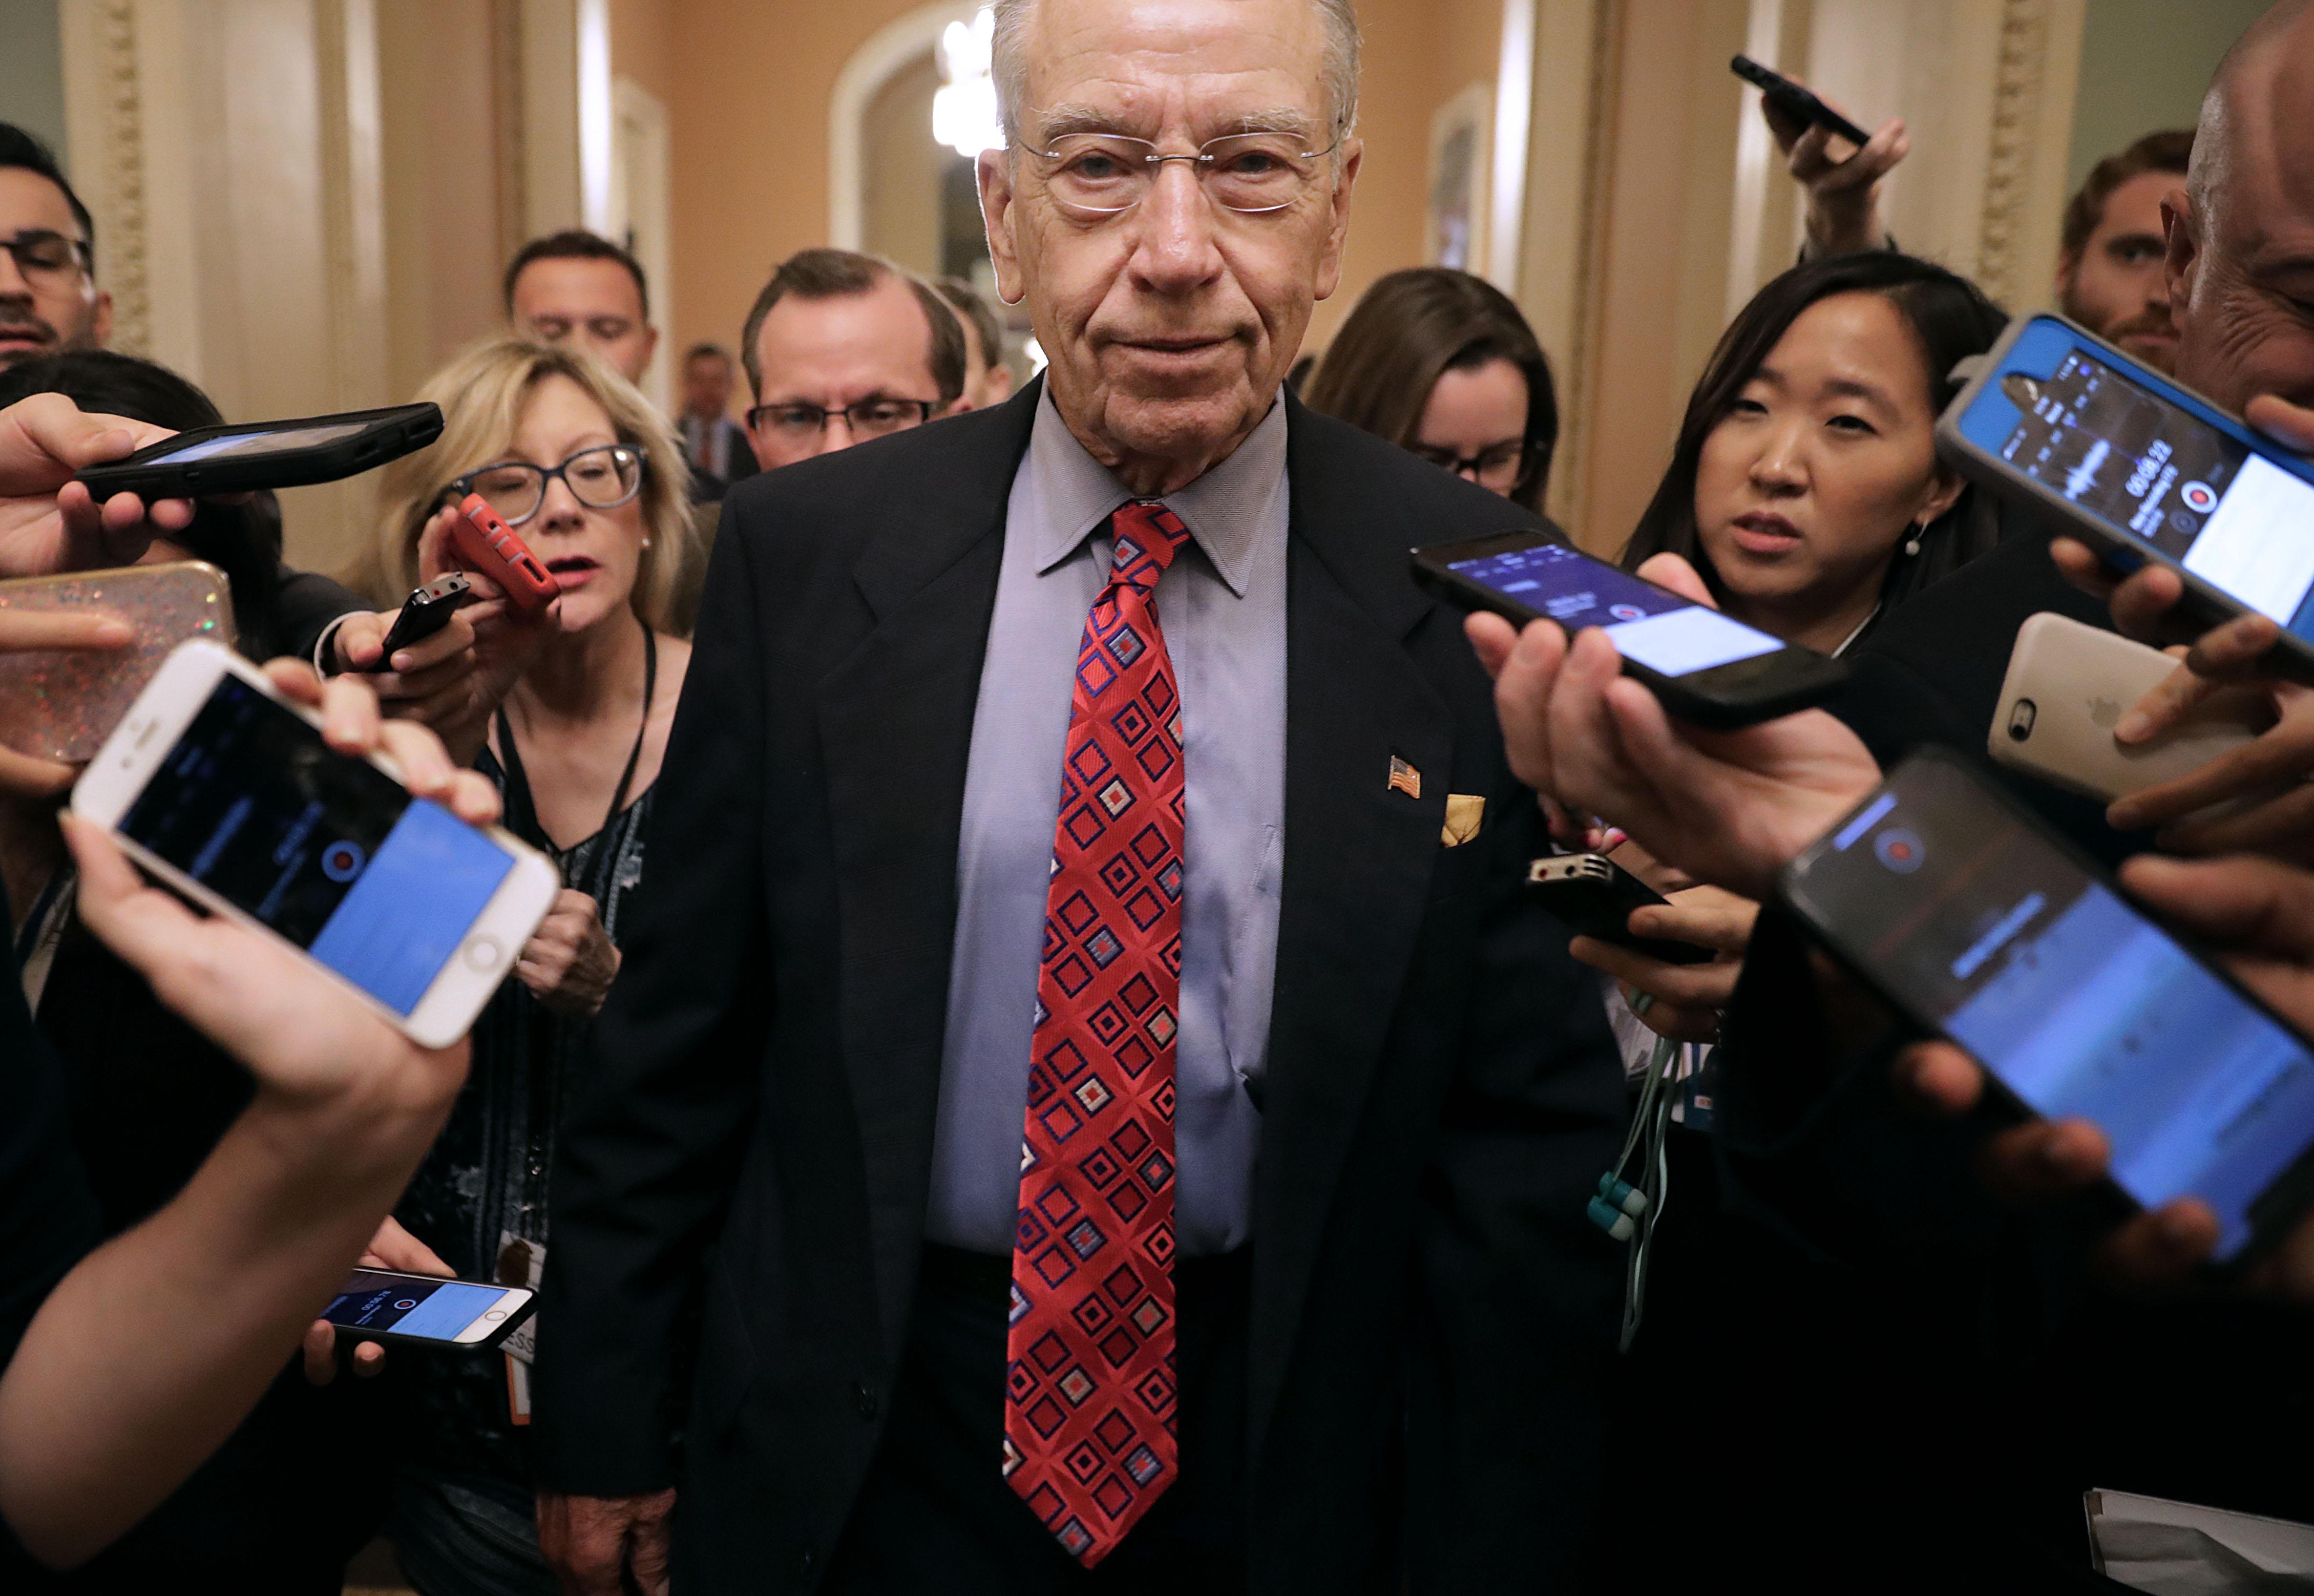 Senate Judiciary Committee Chairman Charles Grassley talks with reporters as he leaves a meeting in the Capitol.